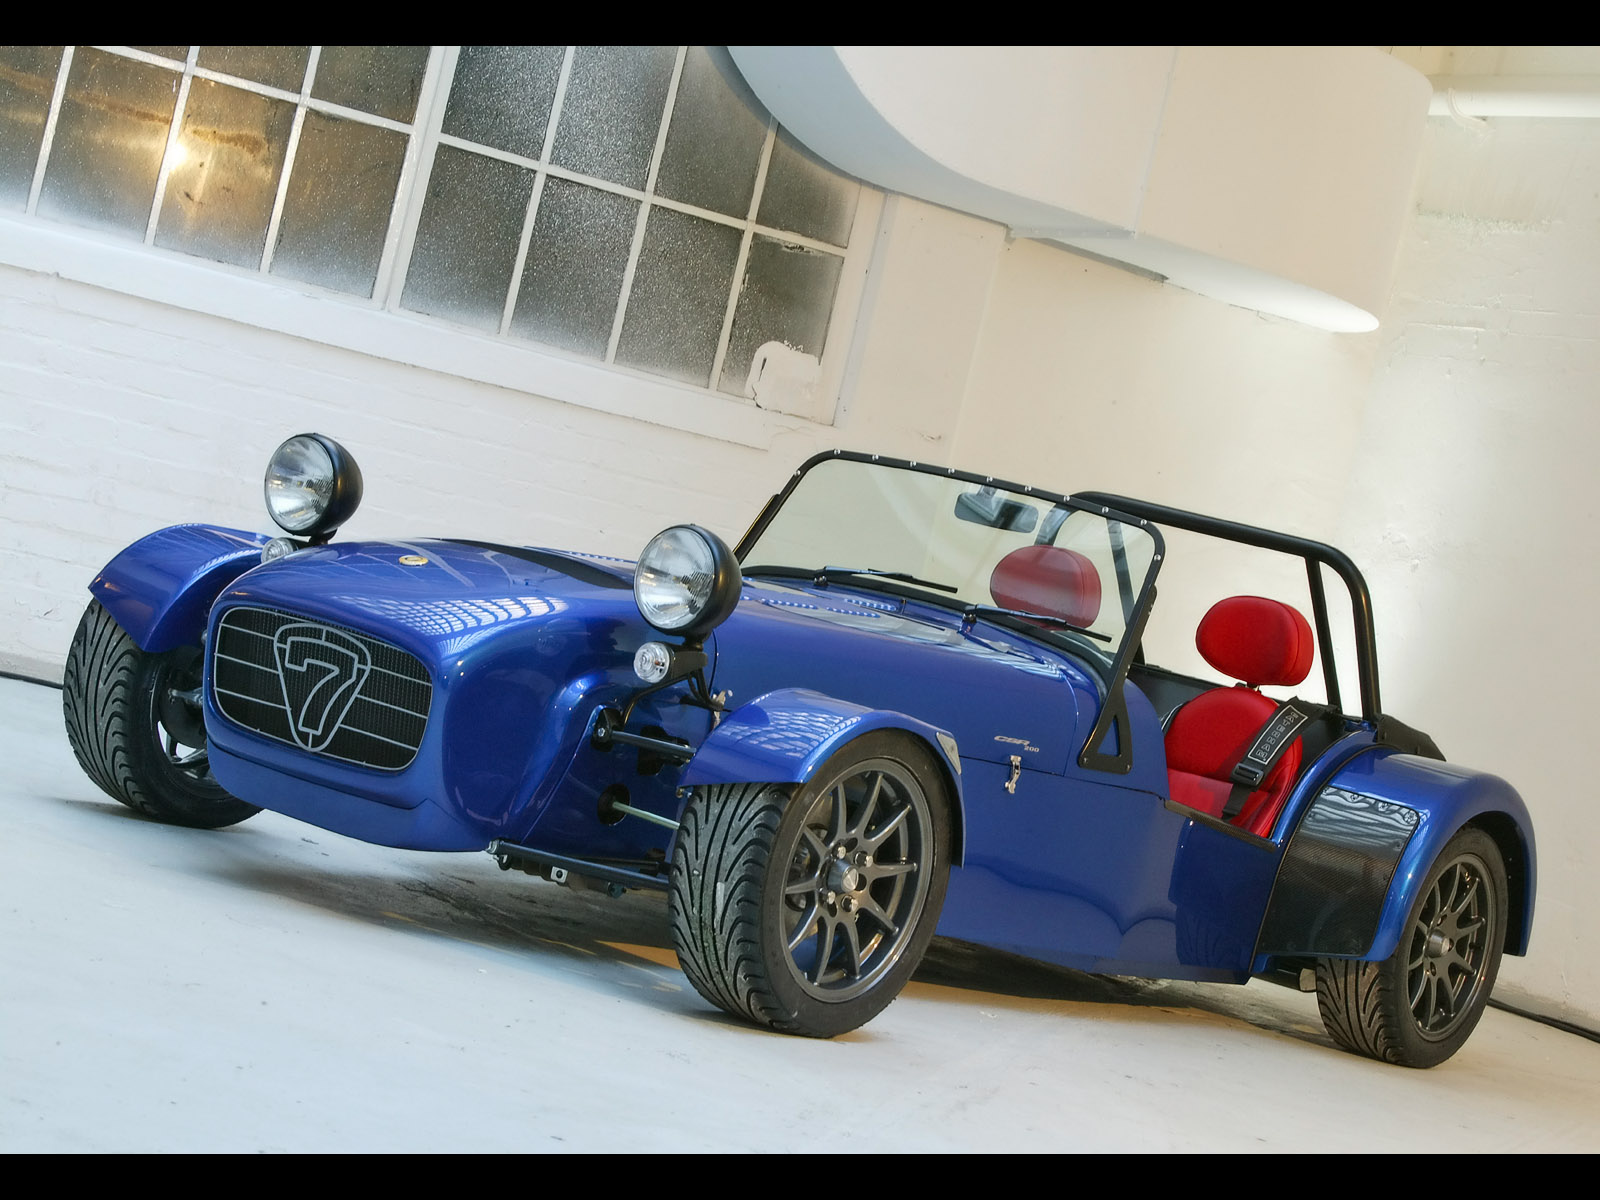 Caterham Super 7 #2